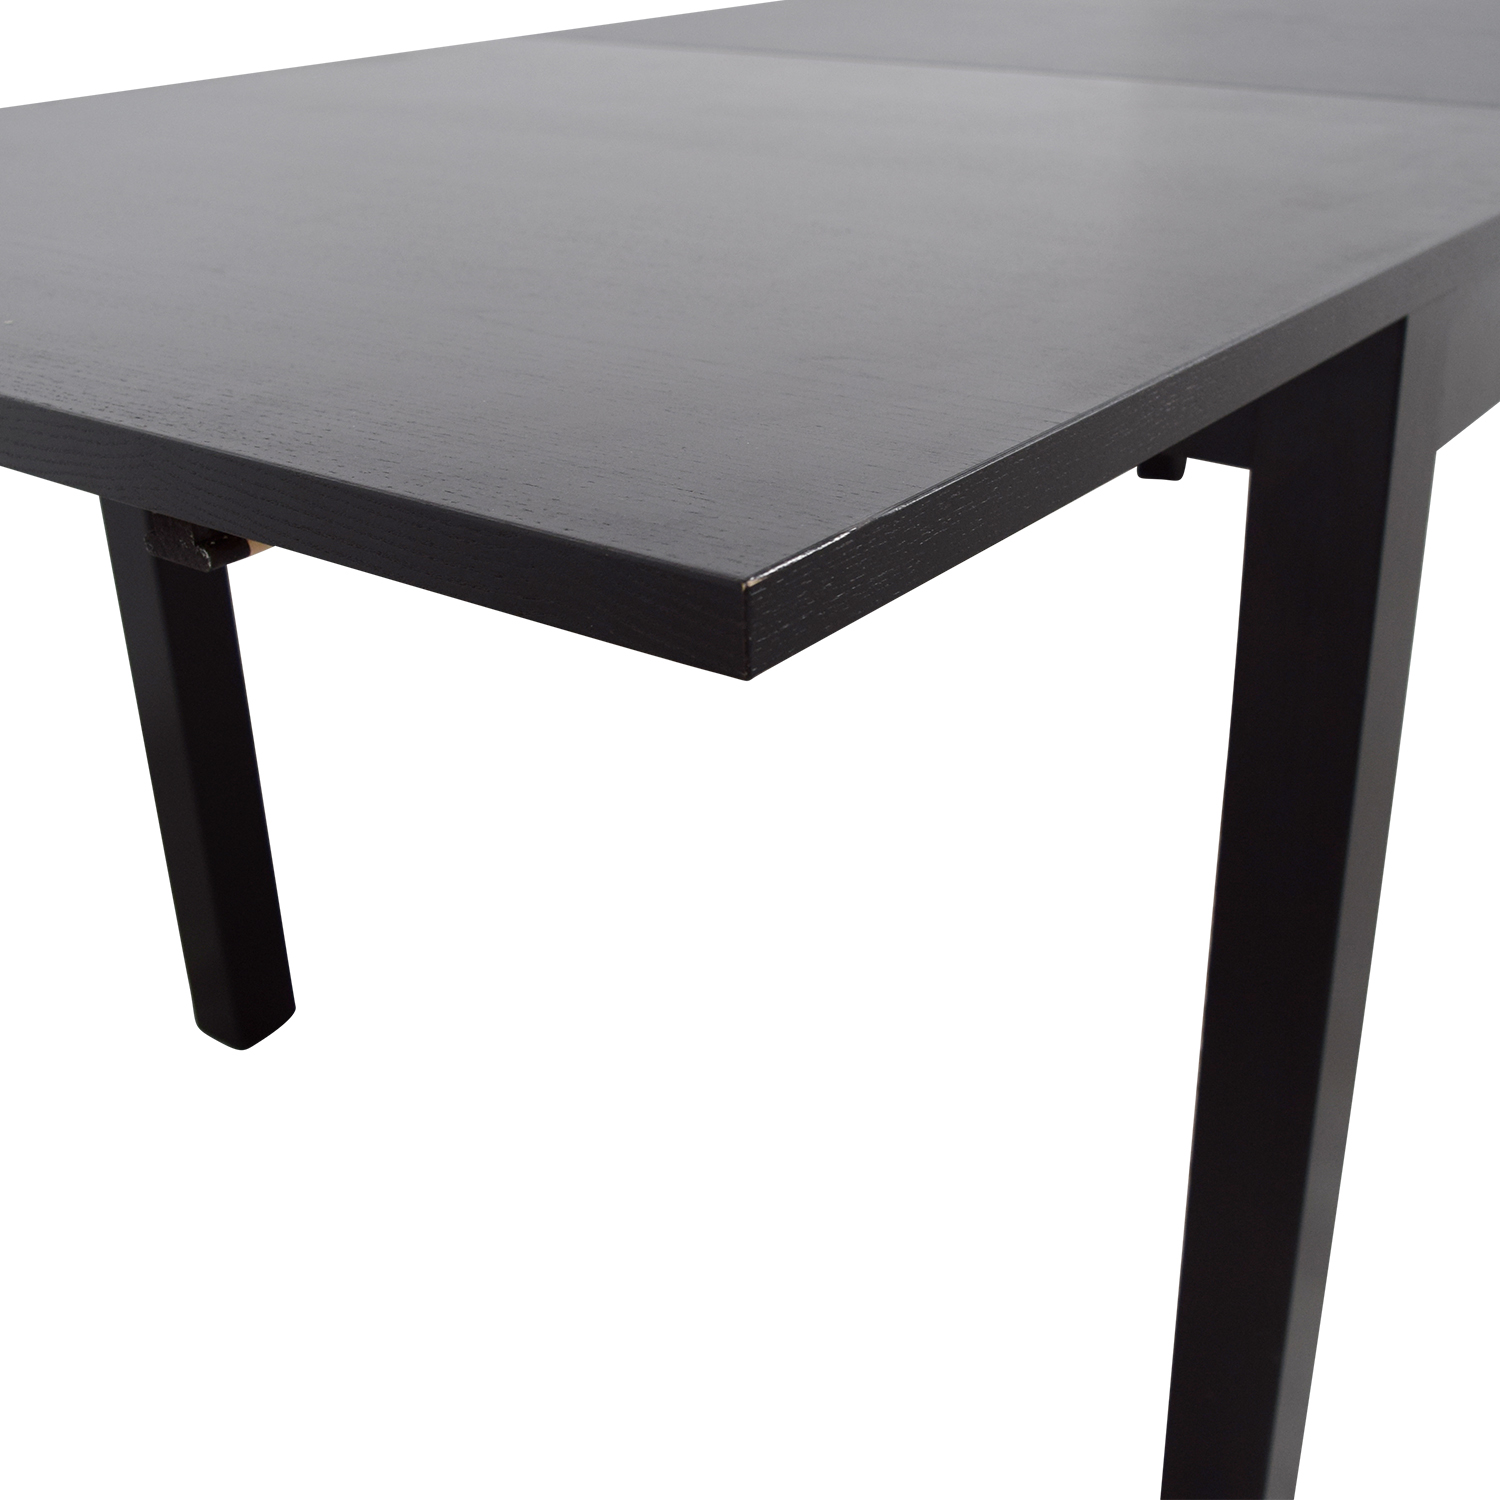 Round Bed Ikea 54% Off - Ikea Ikea Extendable Dining Table / Tables